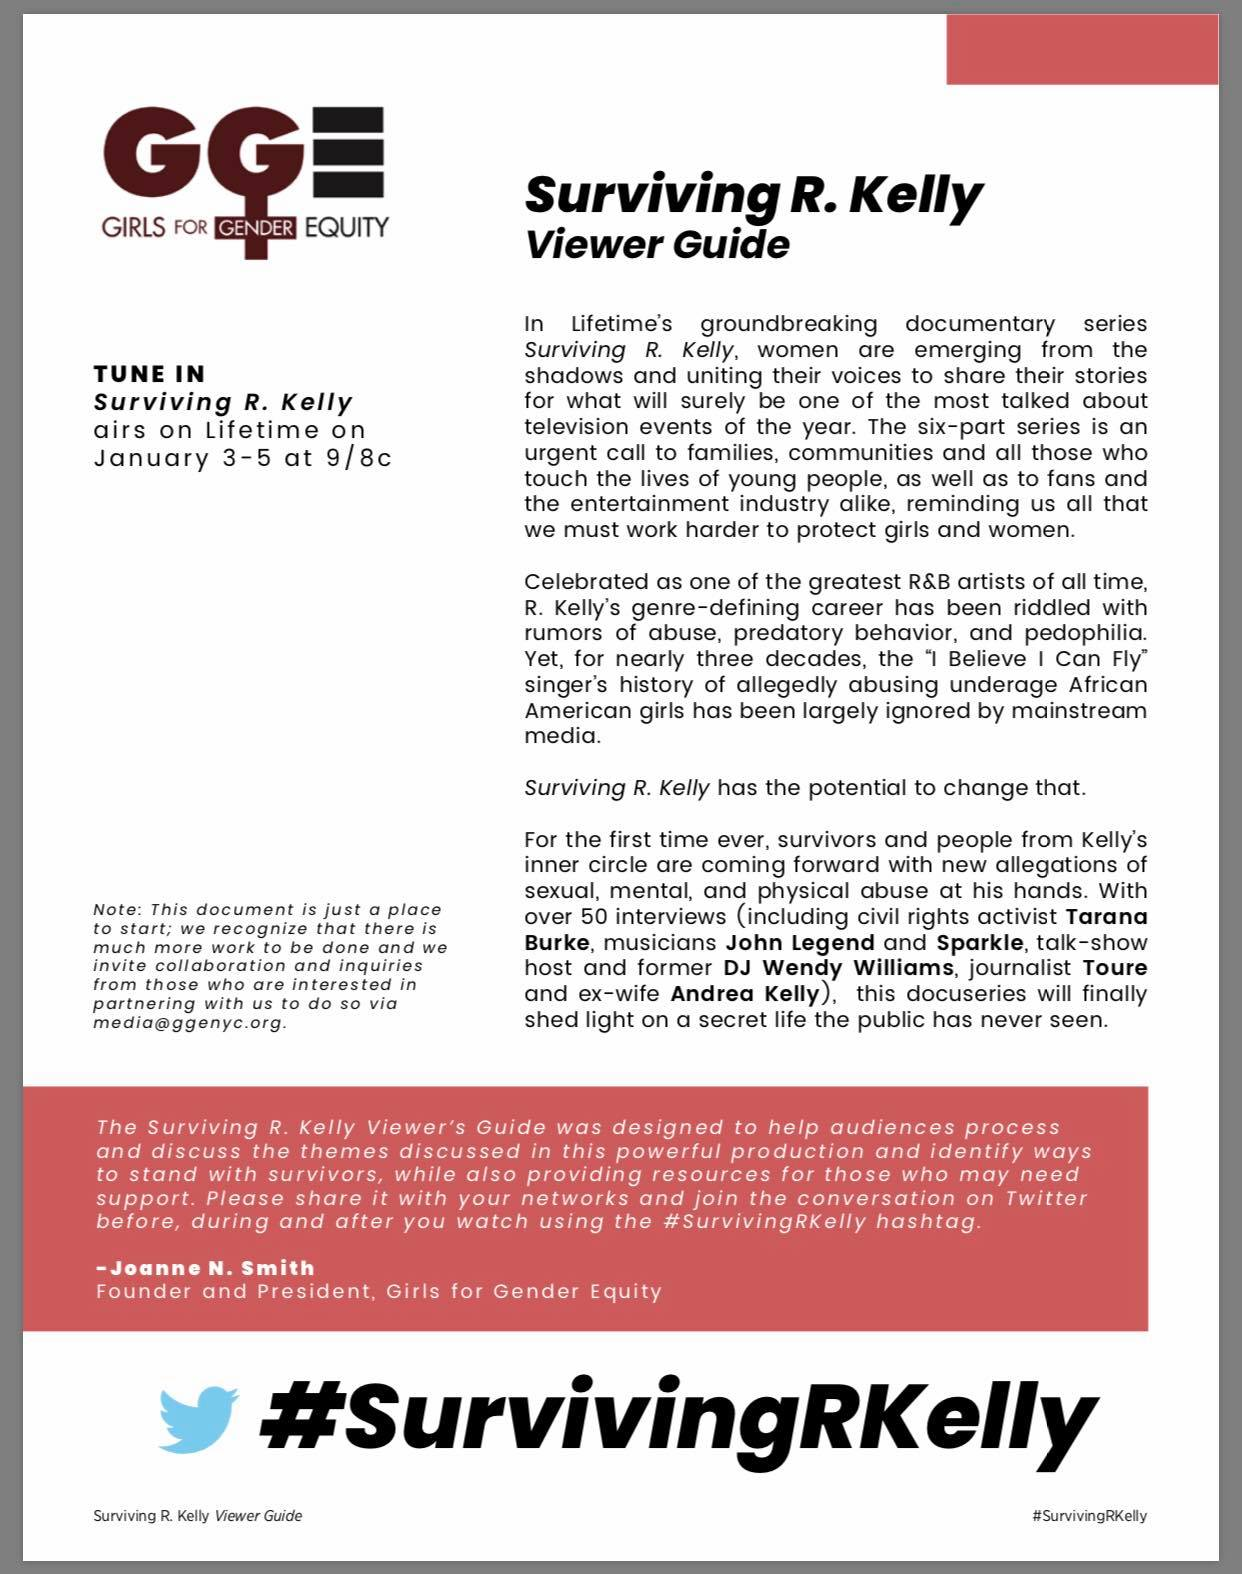 - Surviving R. Kelly - Viewer Guidewww.ggenyc.org/survivingrkelly